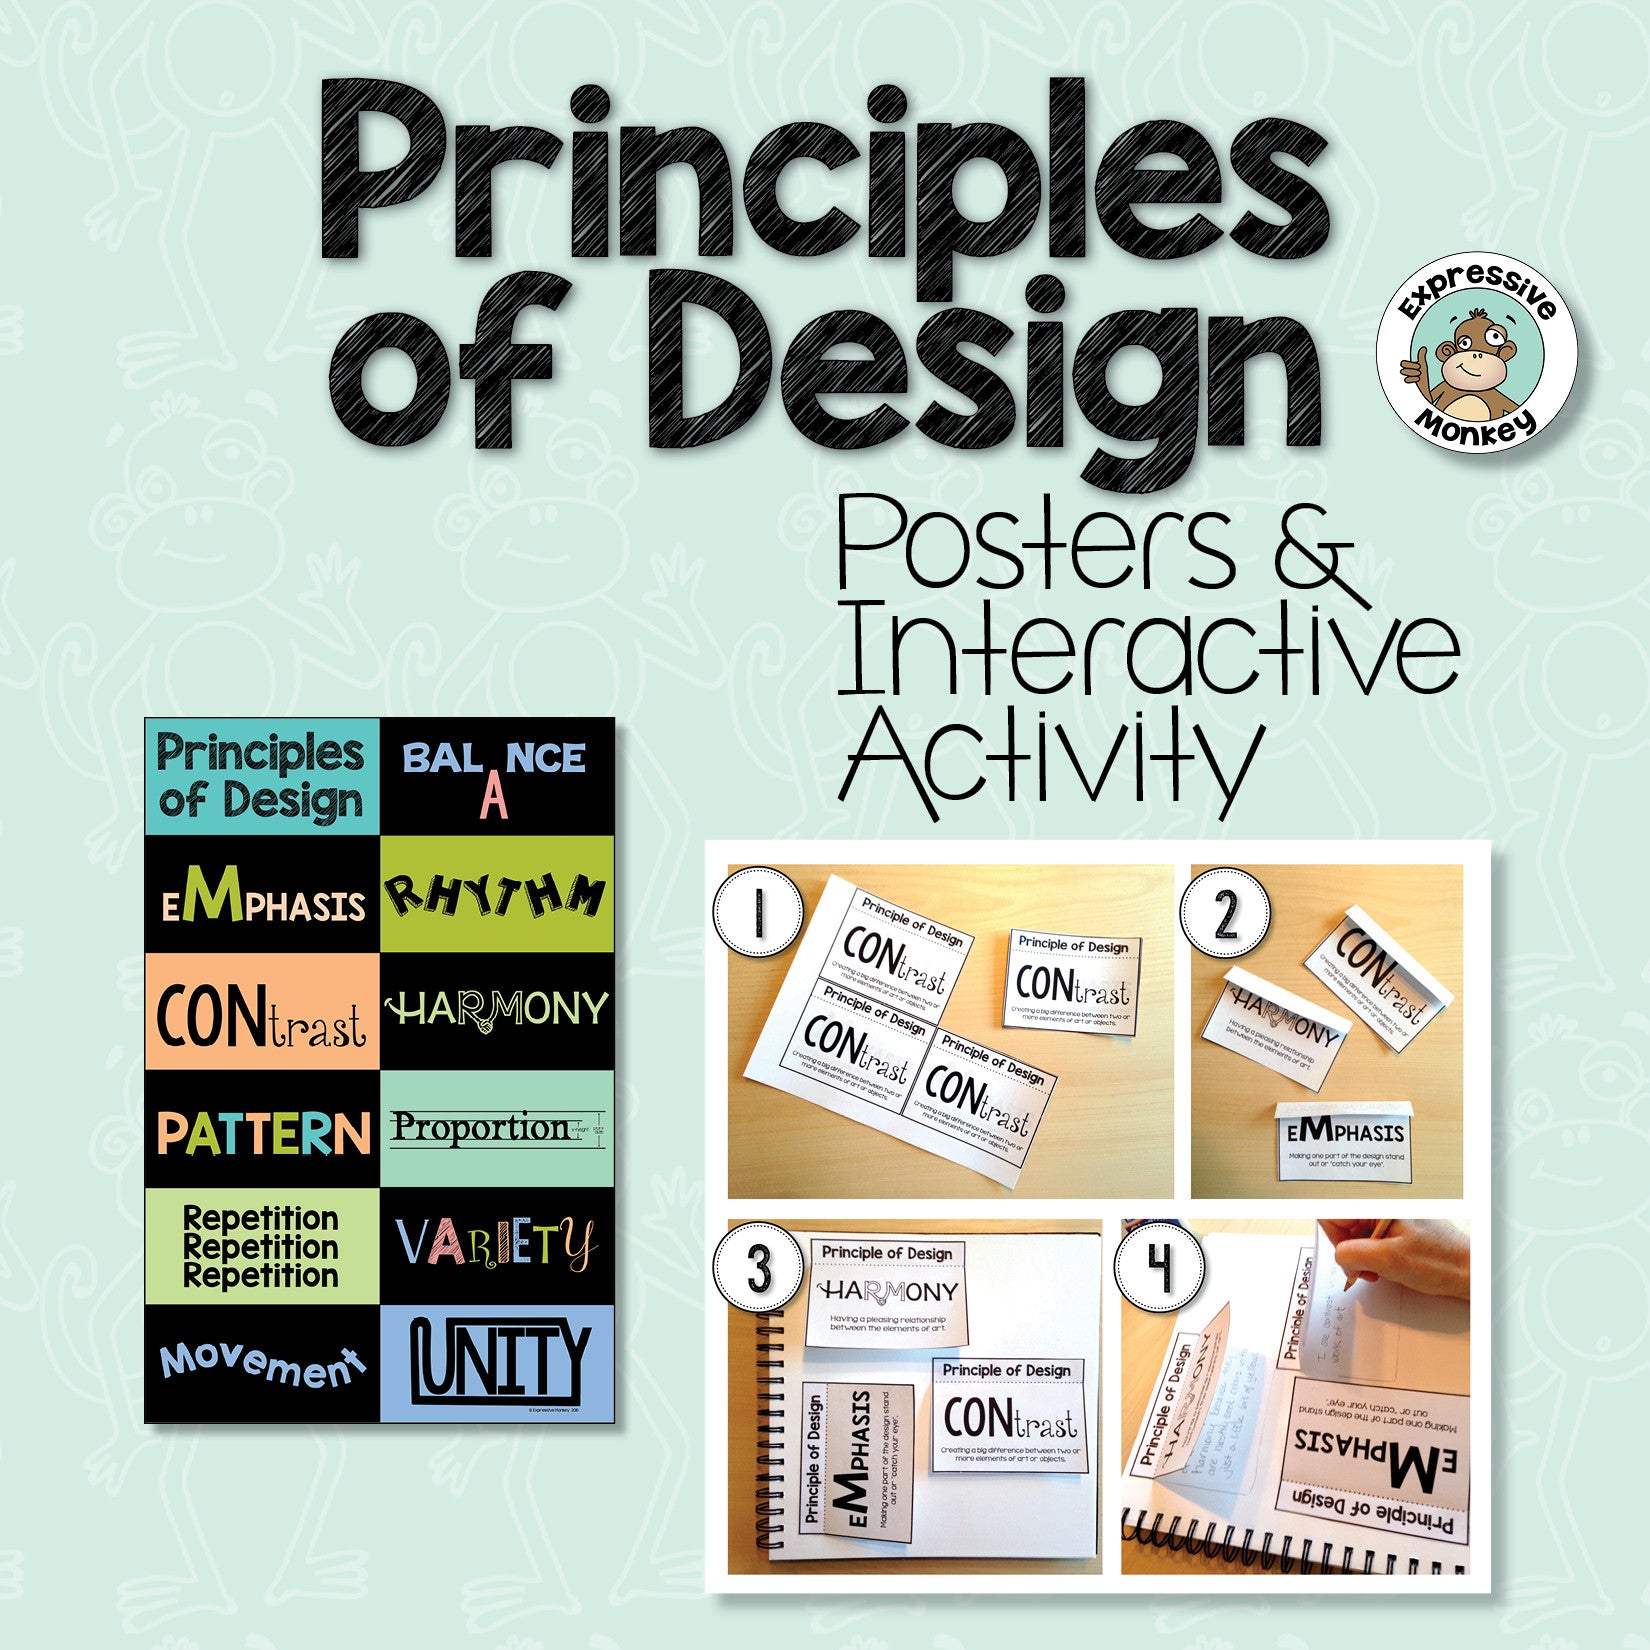 Principles of Design Posters & Interactive Activities